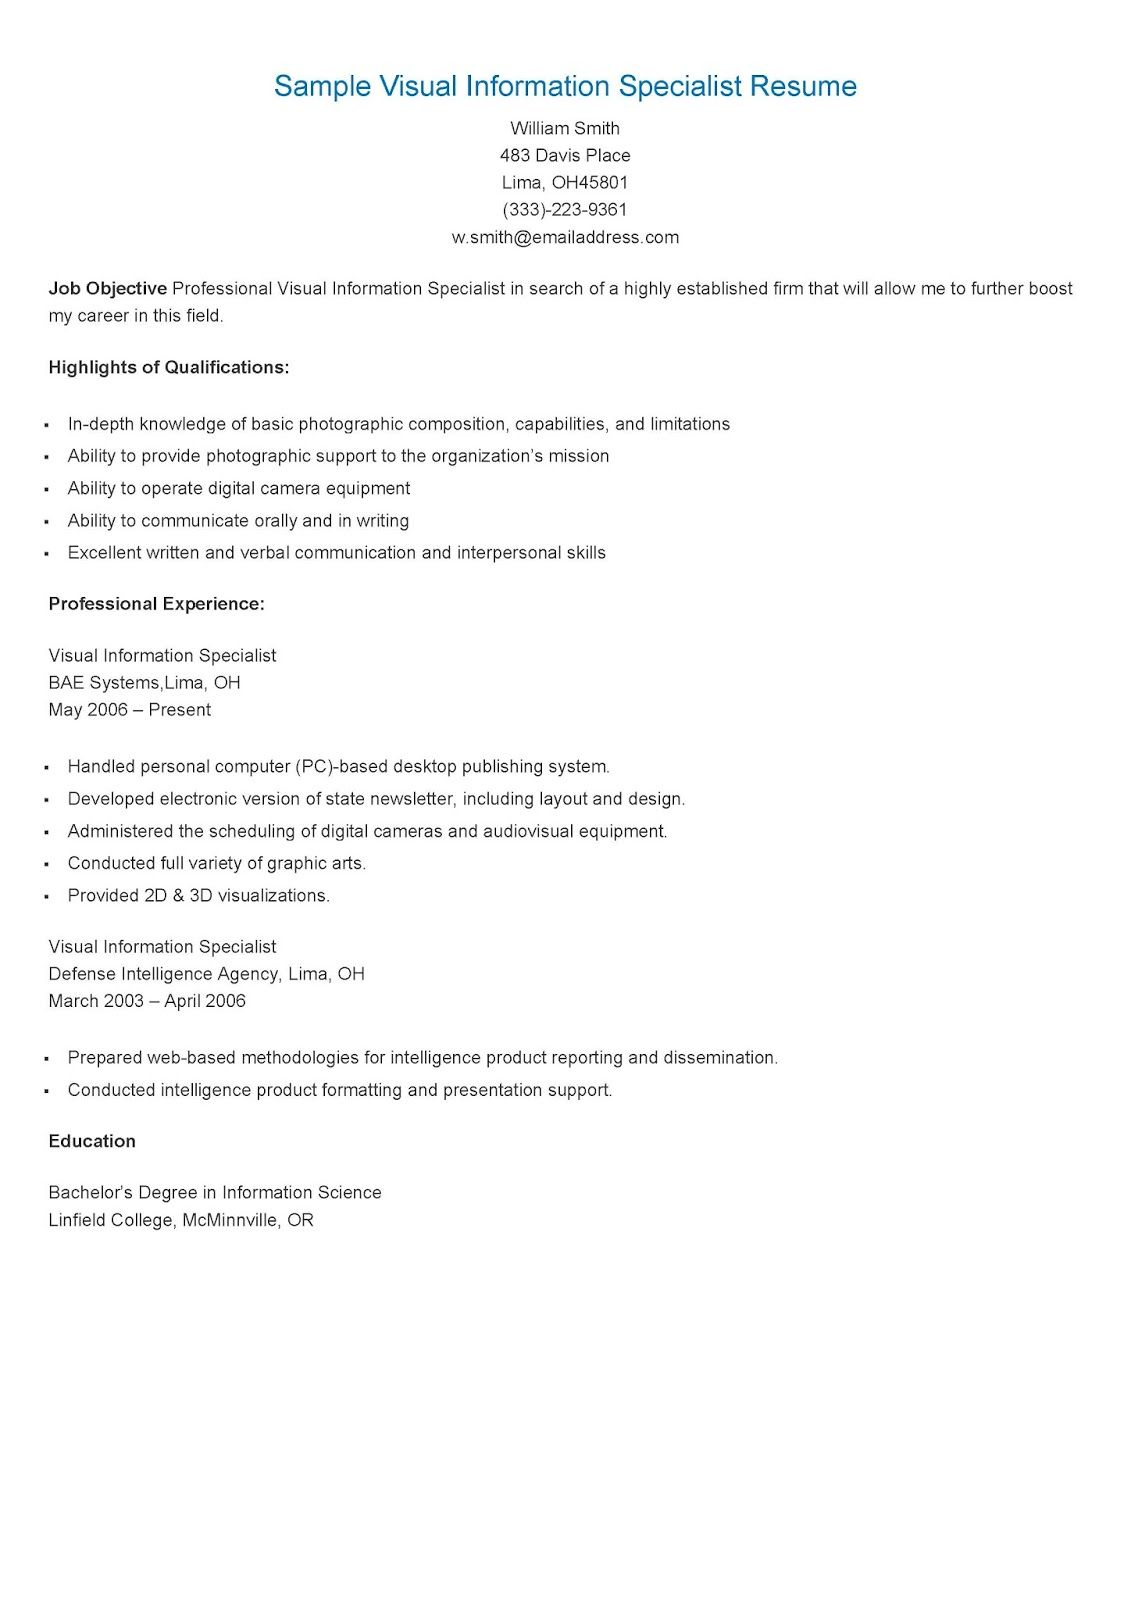 Sample Visual Information Specialist Resume